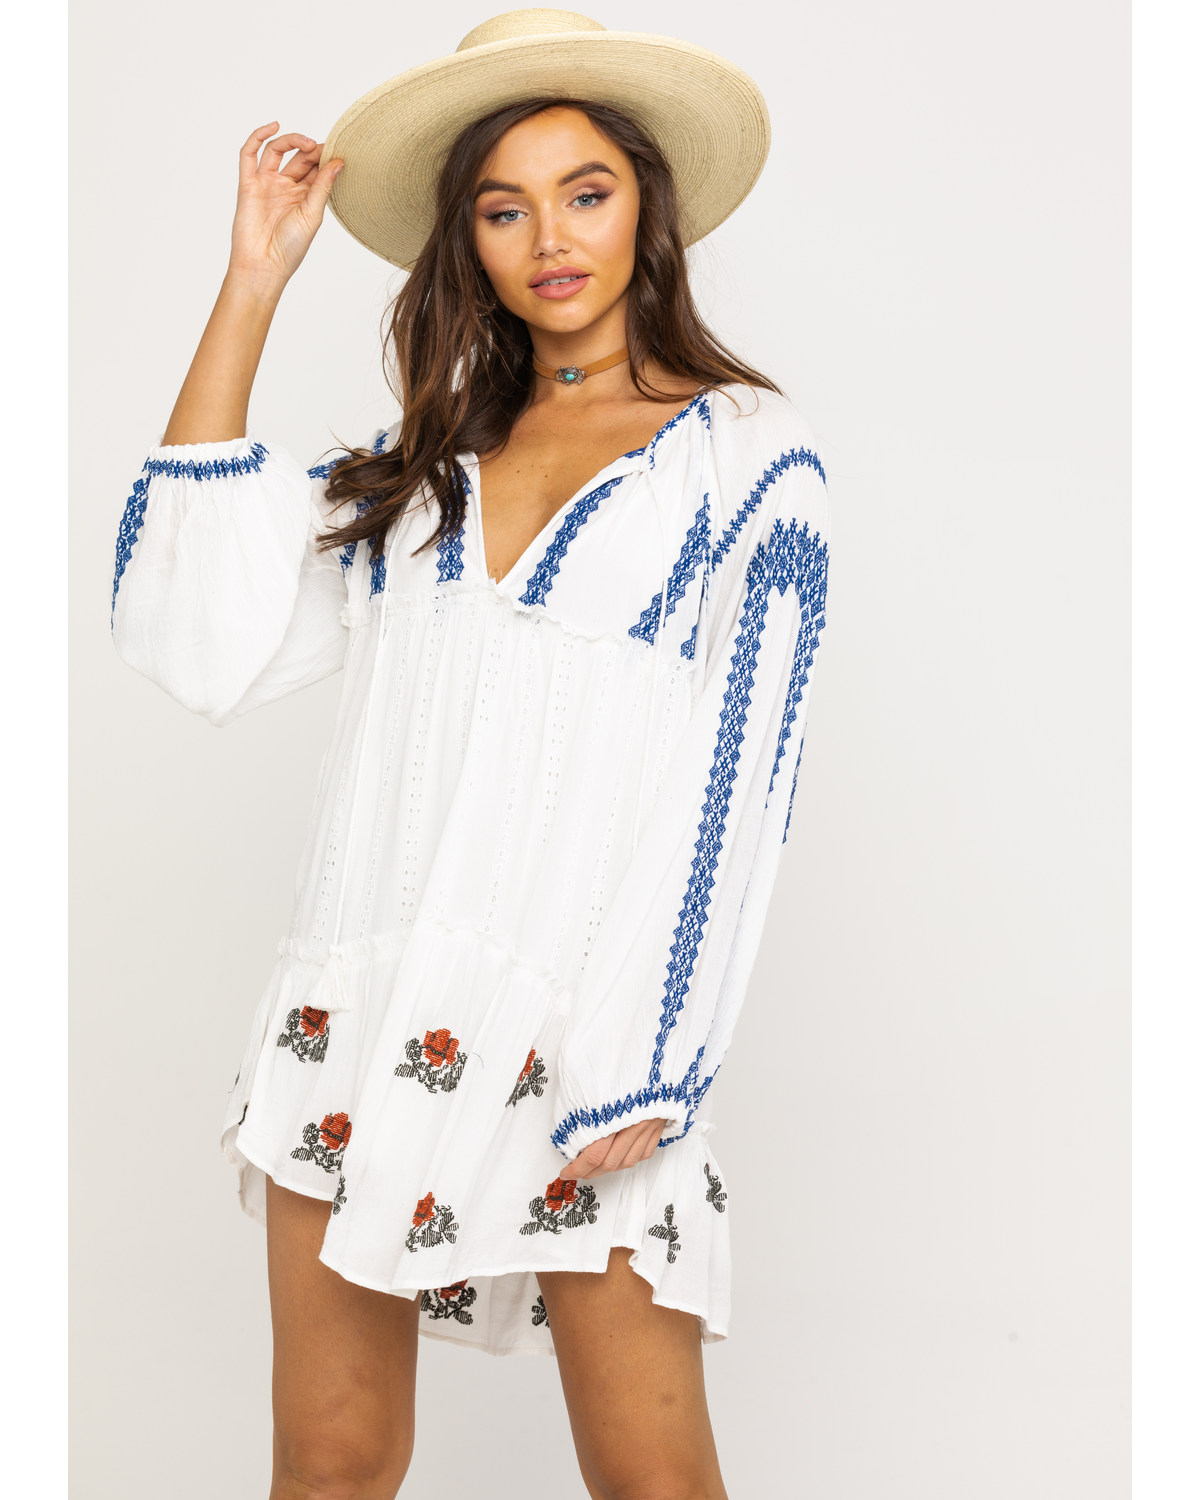 64eaf36d393 Free People Women s Wild Horse Embroidered Mini Dress